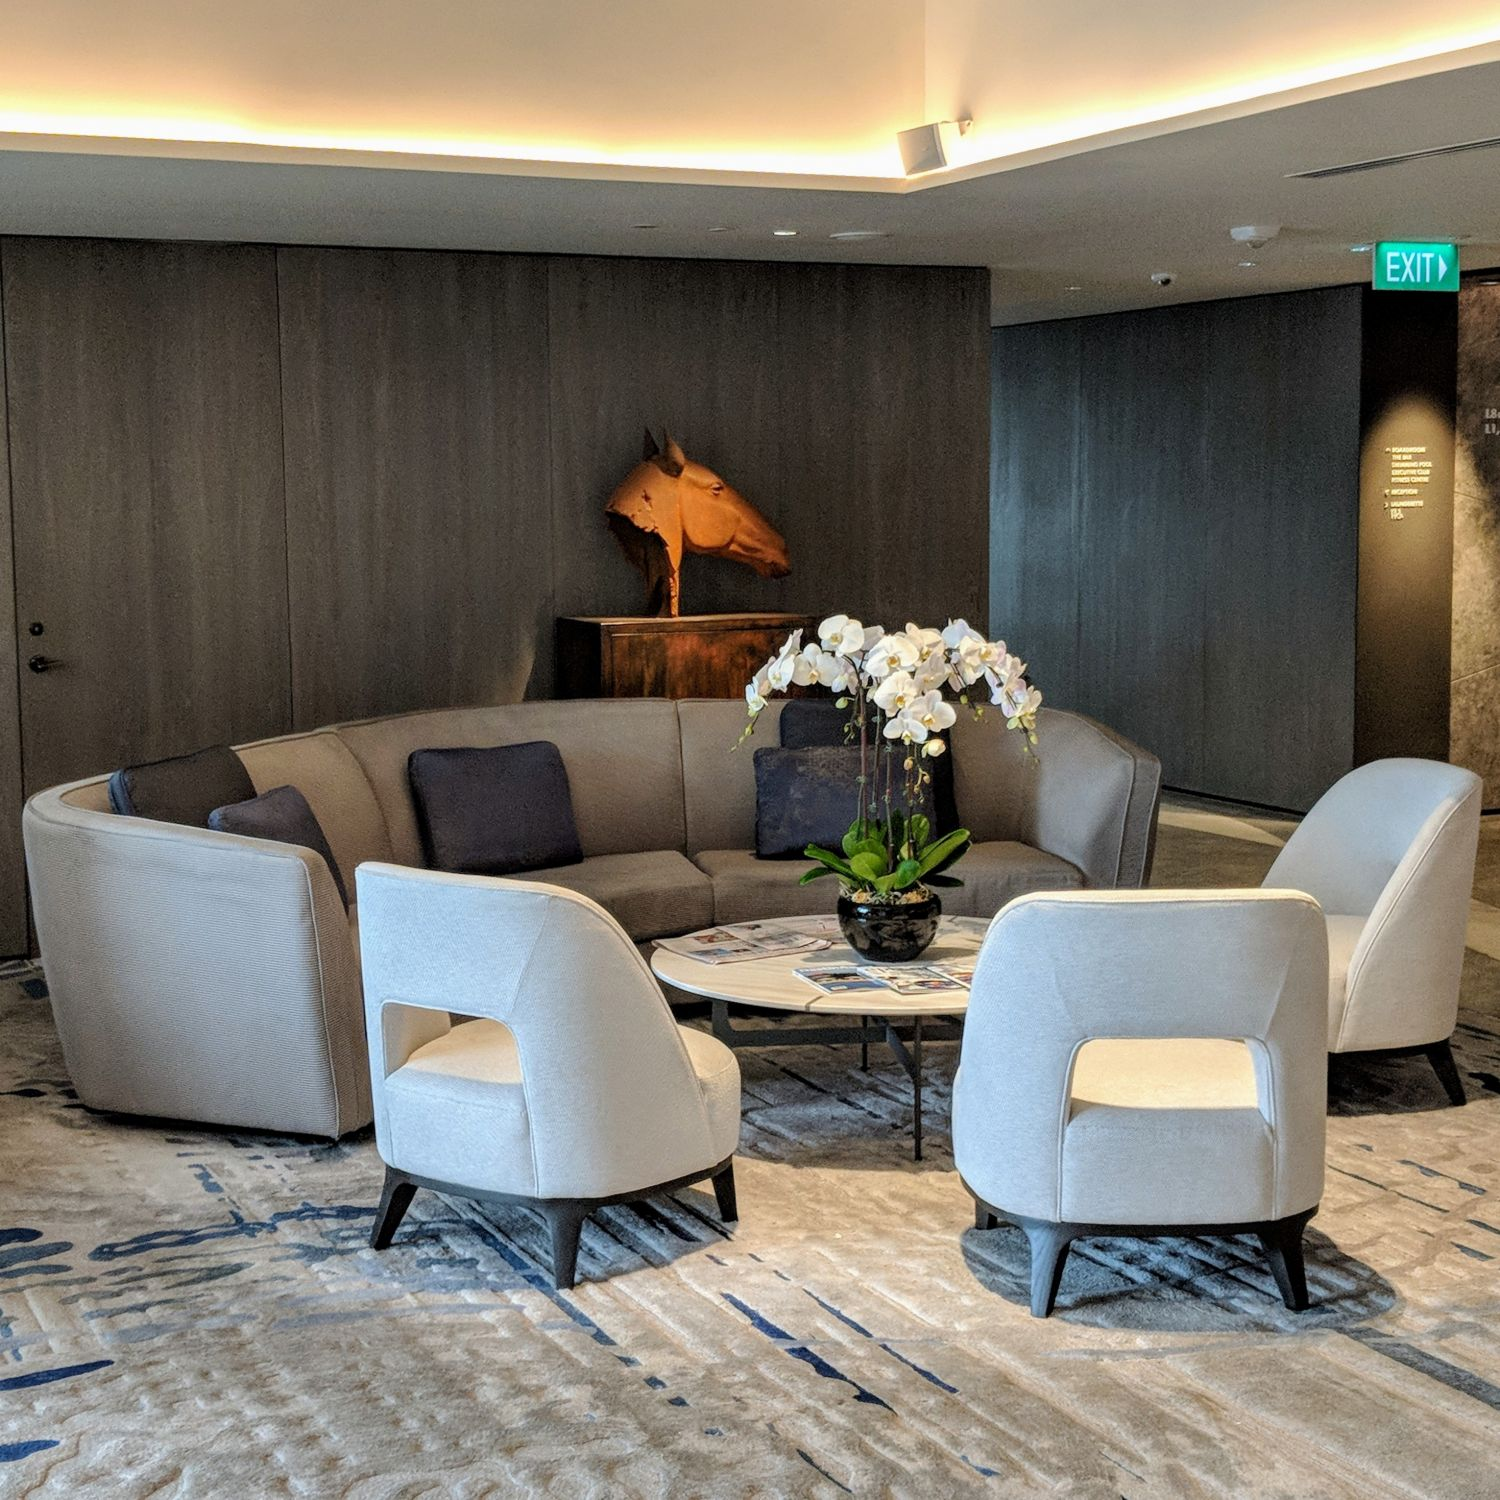 oakwood premier oue singapore lobby